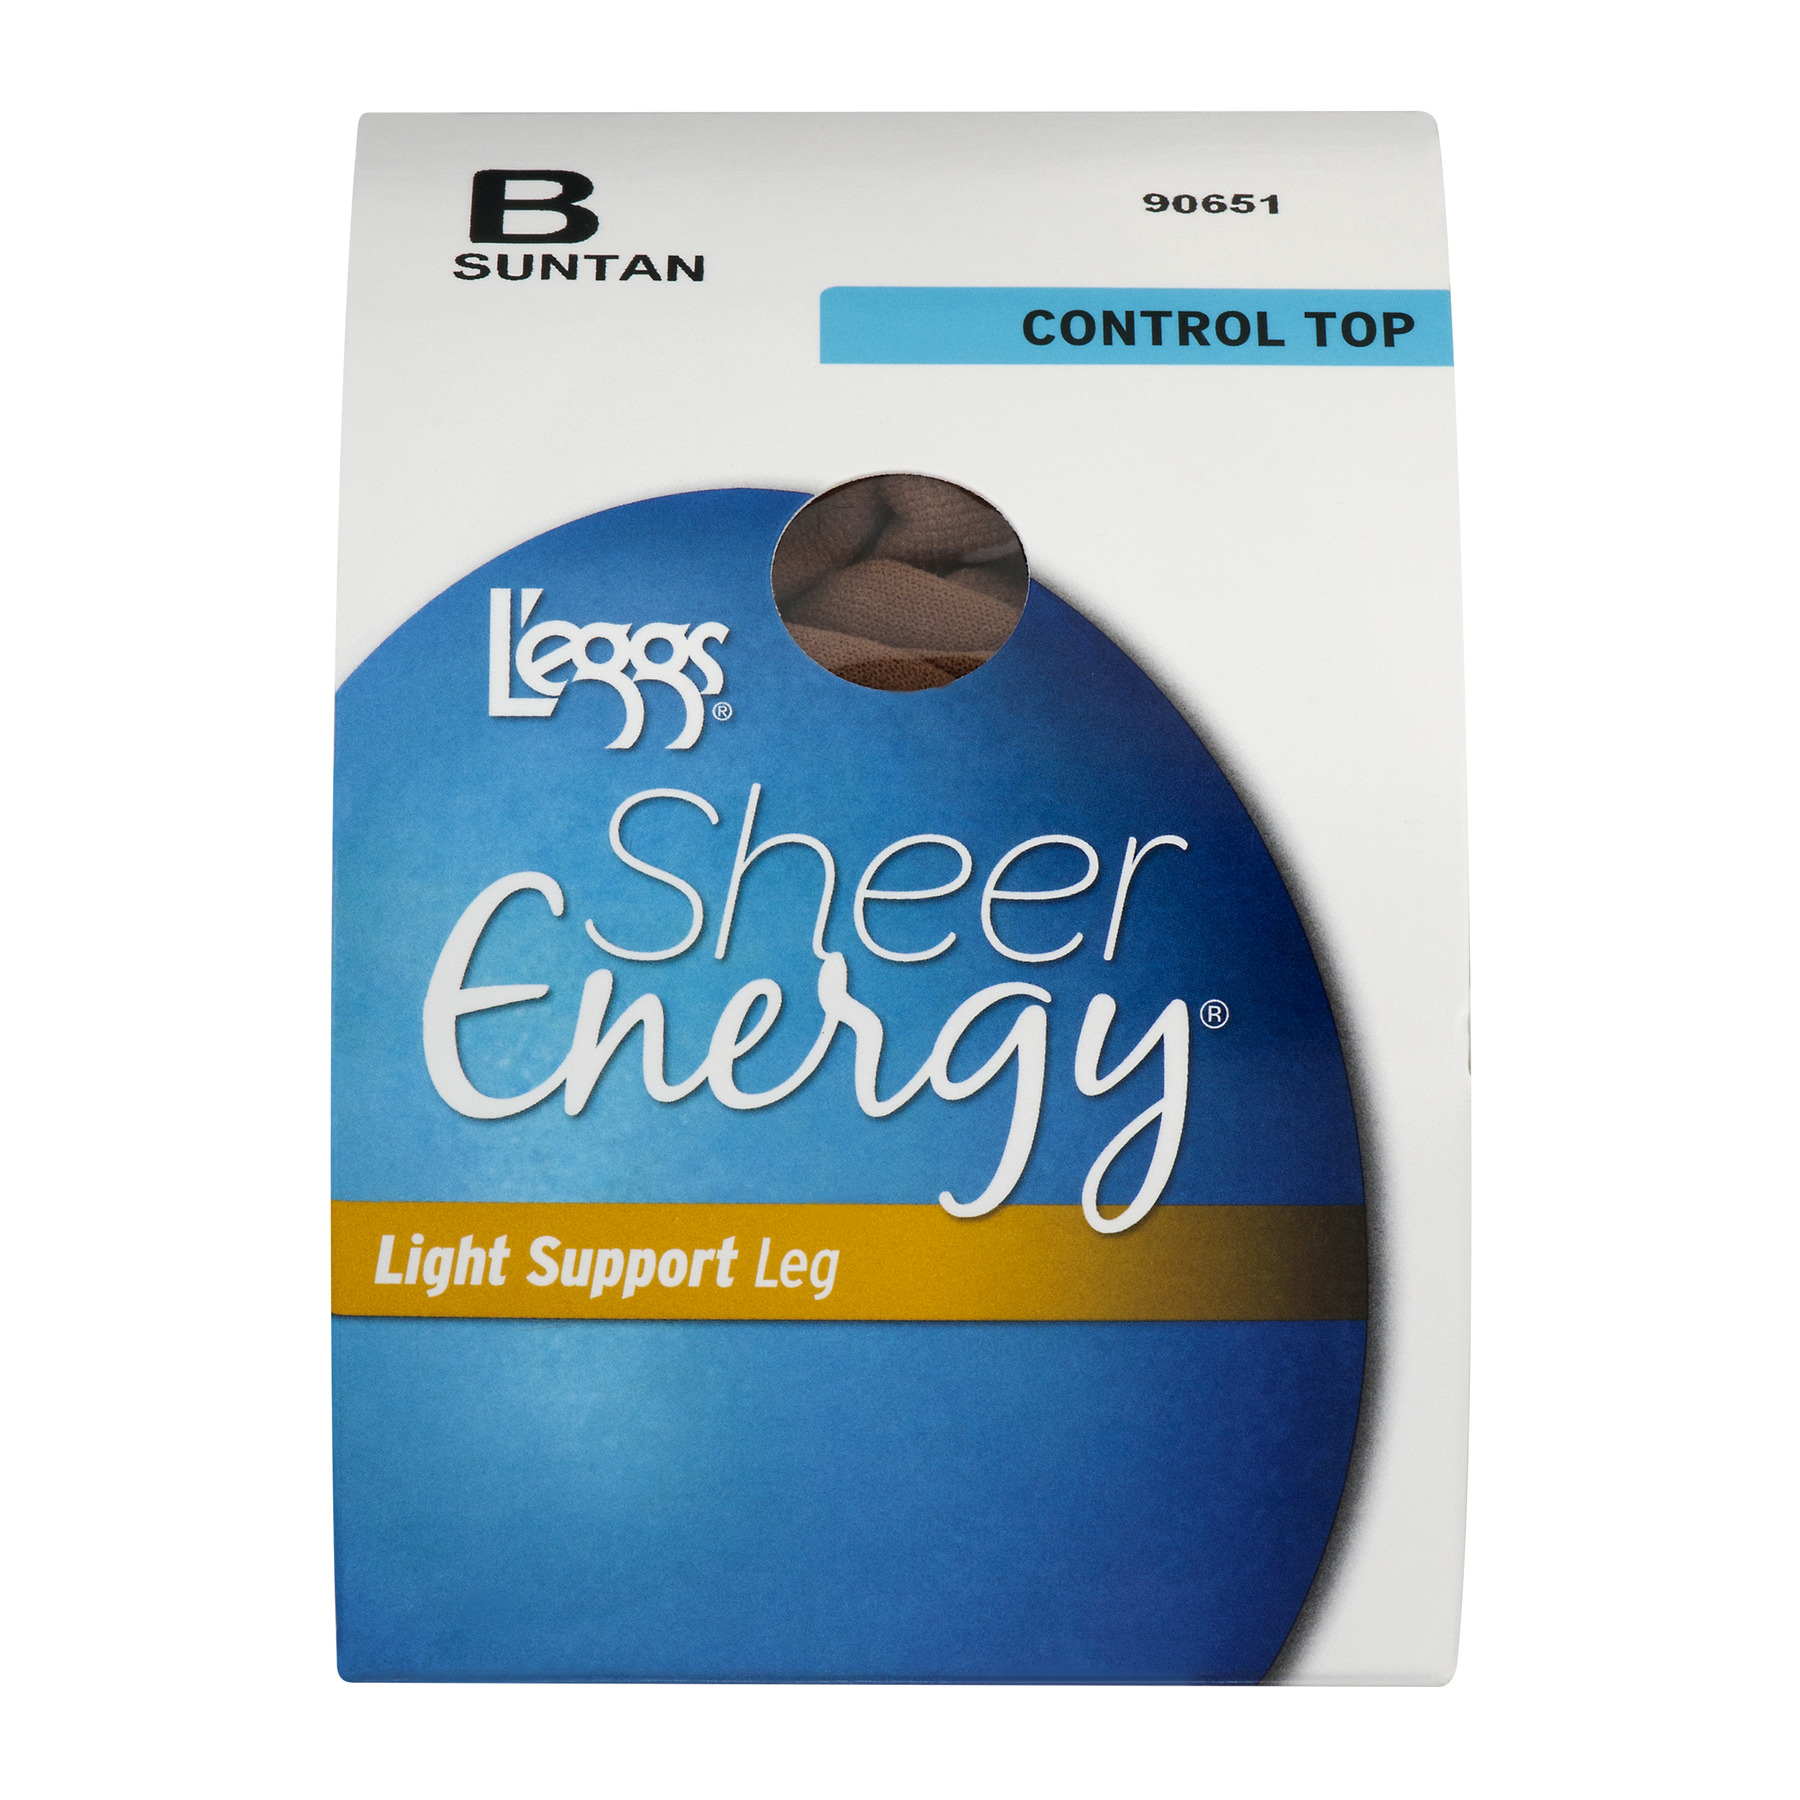 L'eggs Sheer Energy Light Support Leg Control Top B Suntan, 1.0 PACK